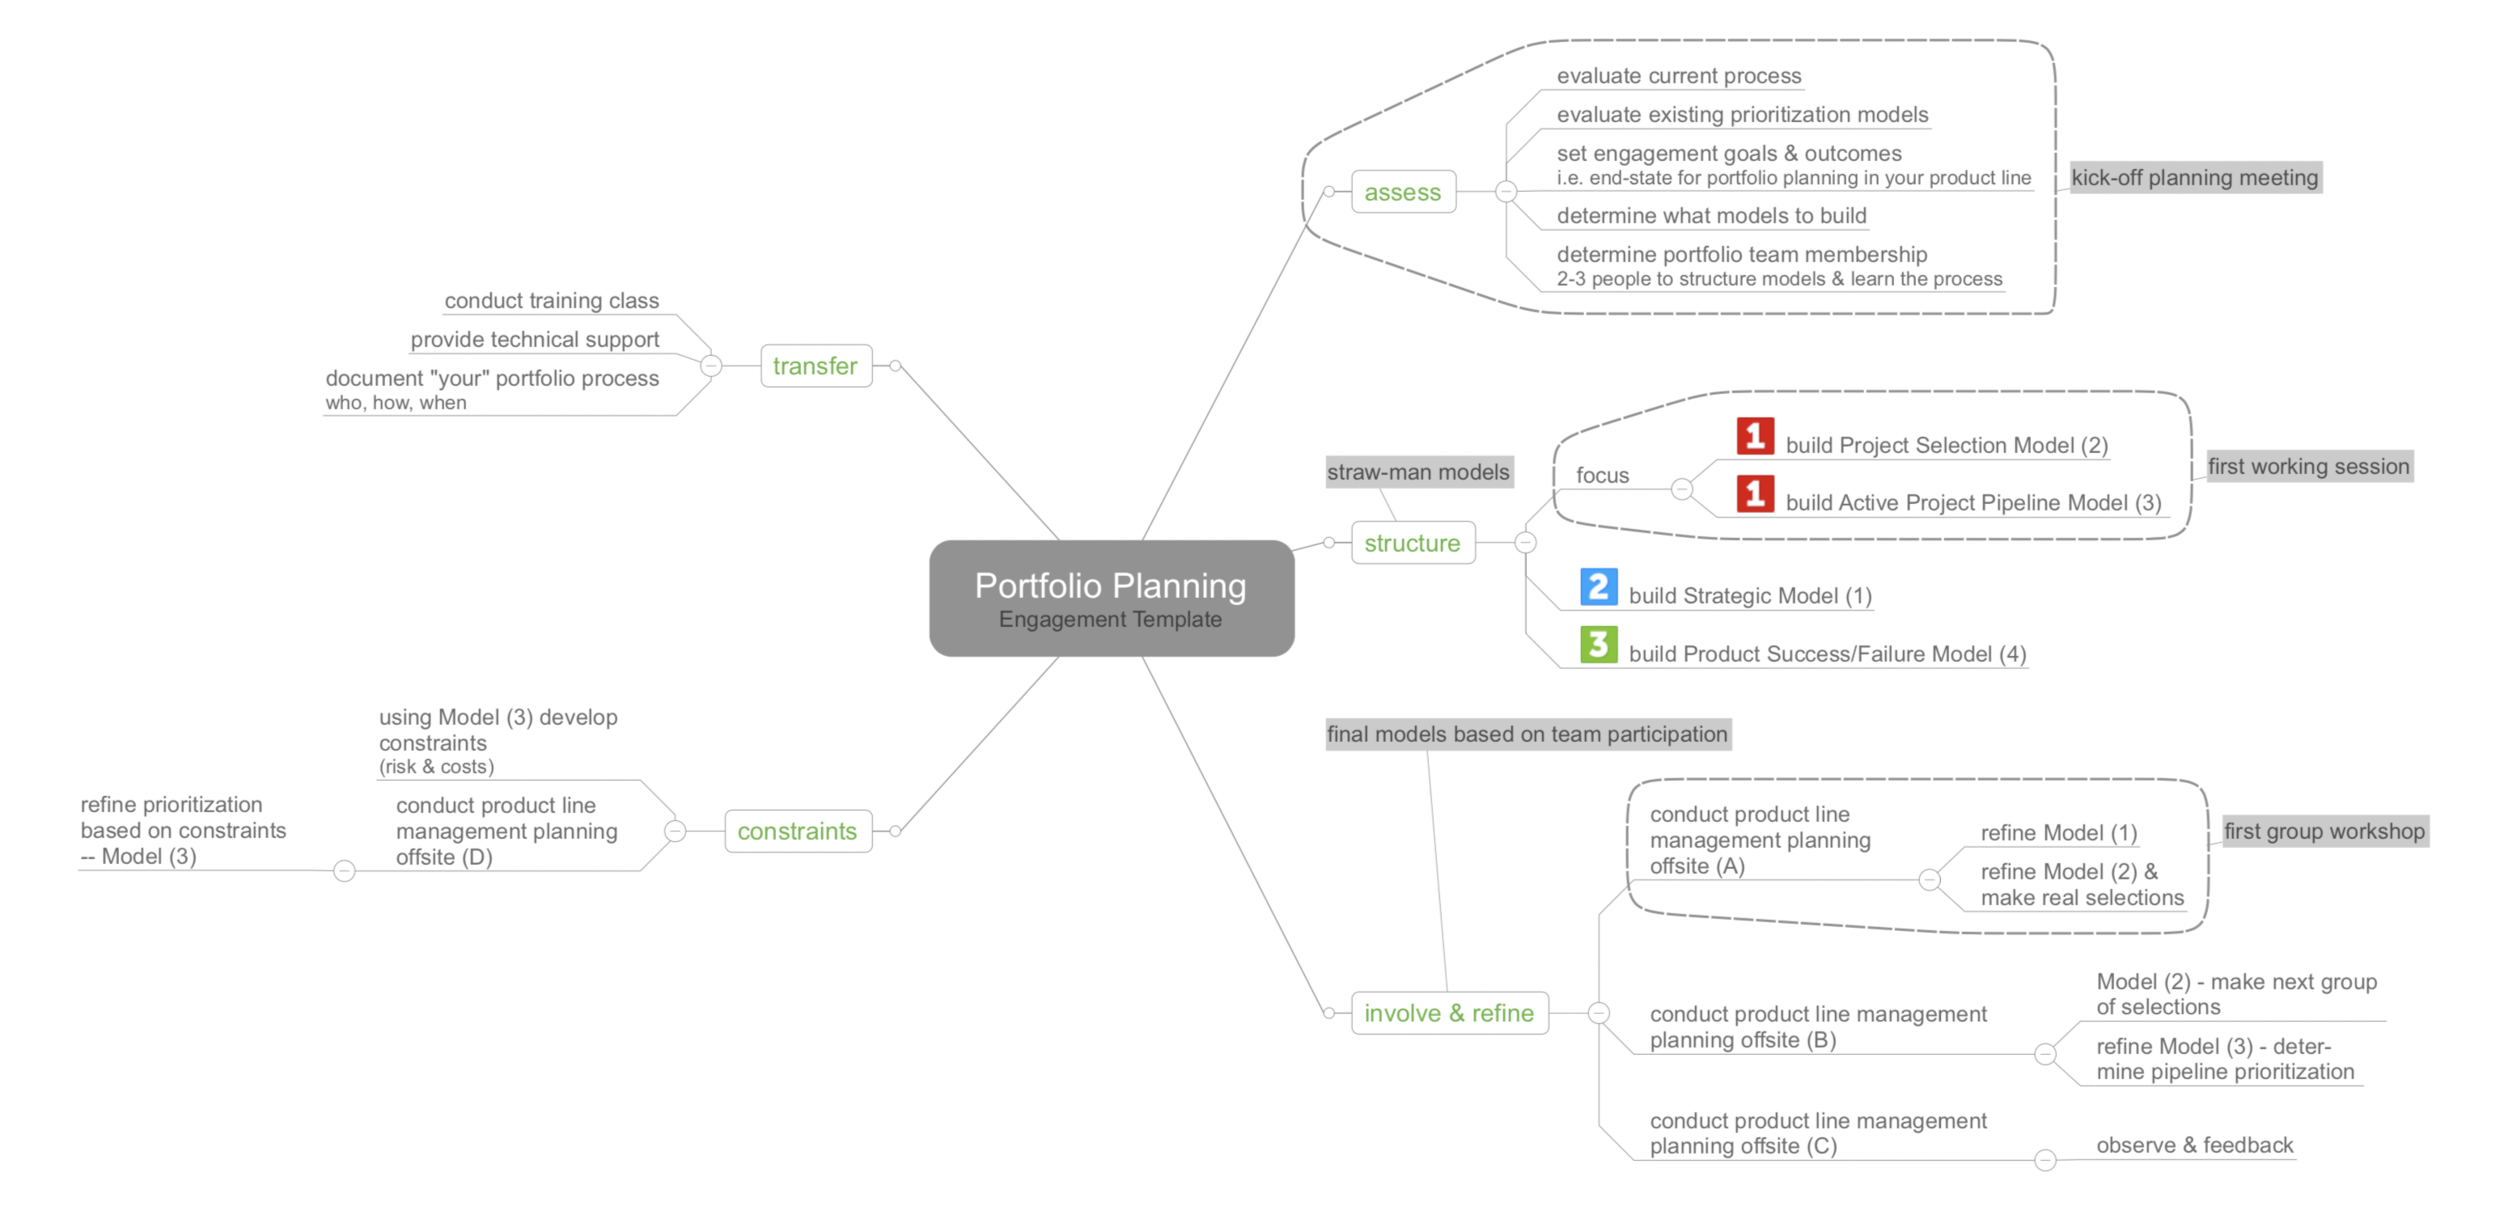 Detailed deployment mindmap